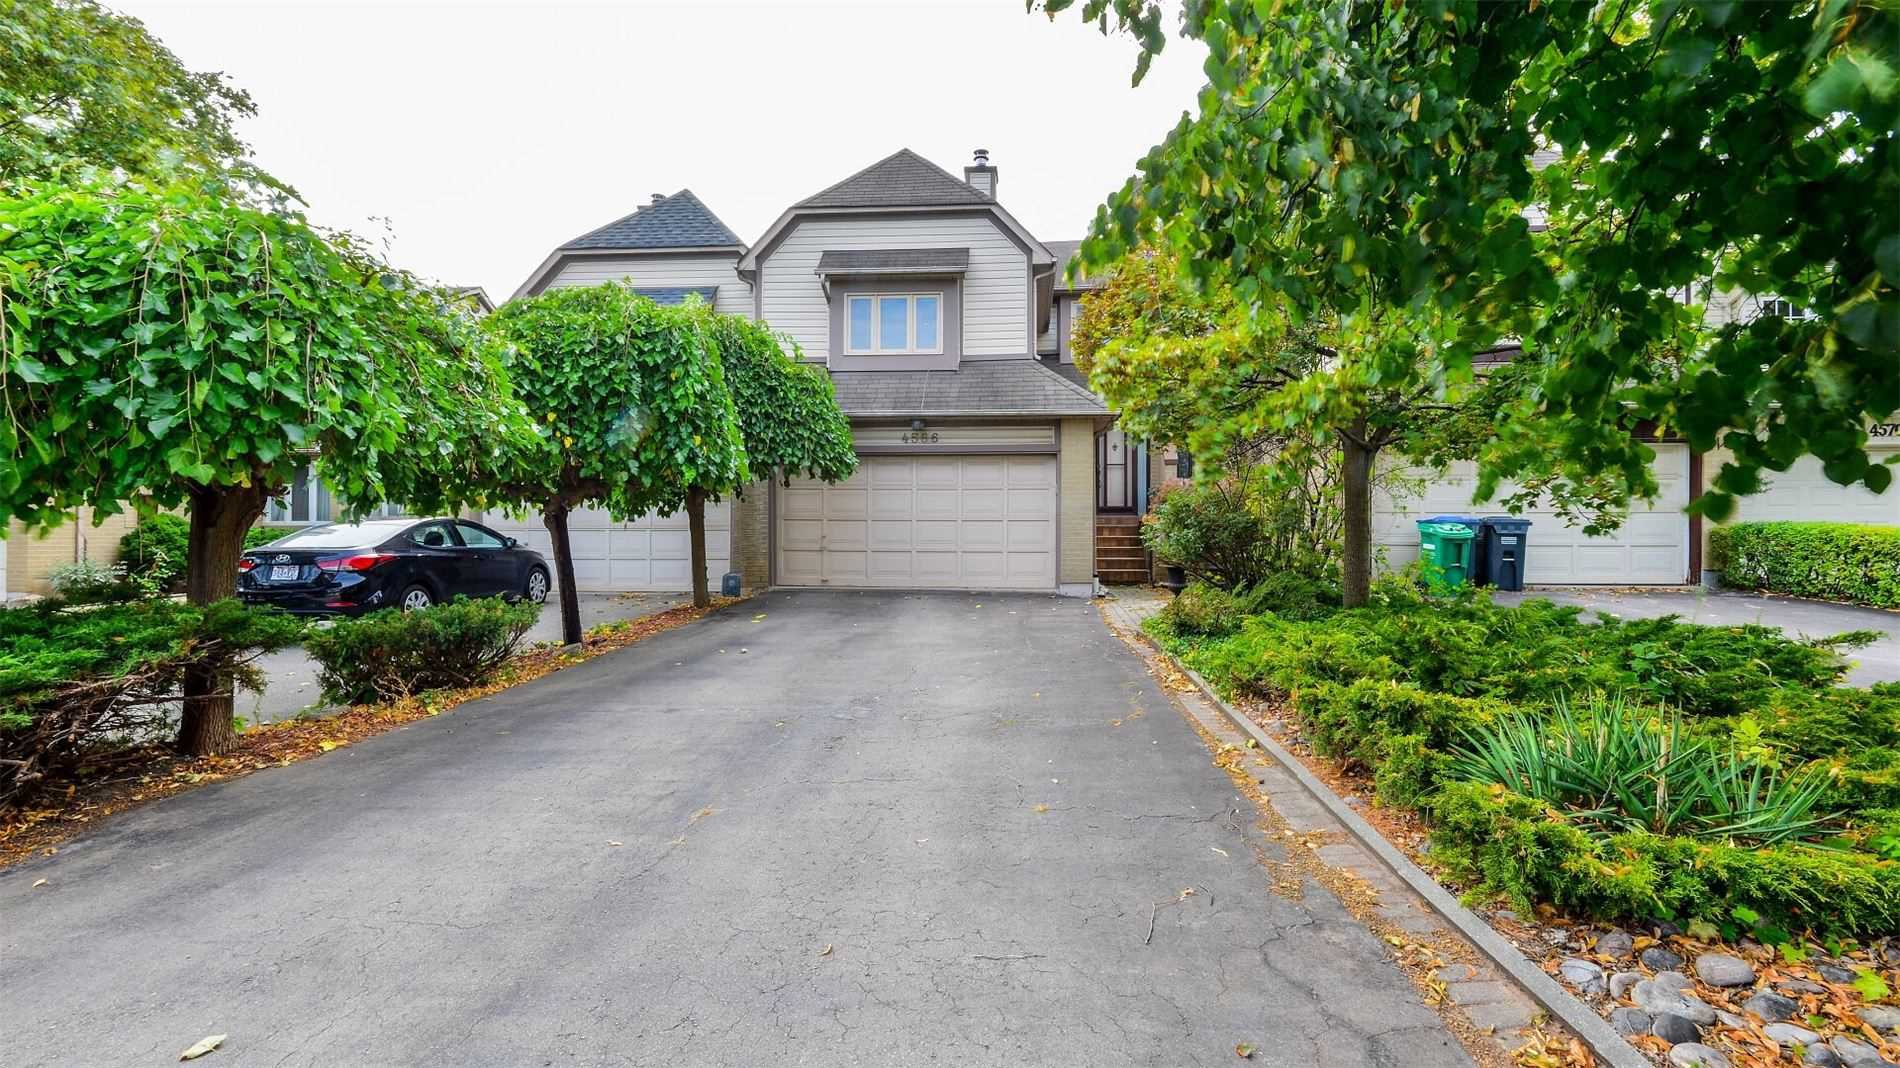 Main Photo: 4566 Bay Villa Ave in Mississauga: Central Erin Mills Freehold for sale : MLS®# W4592088